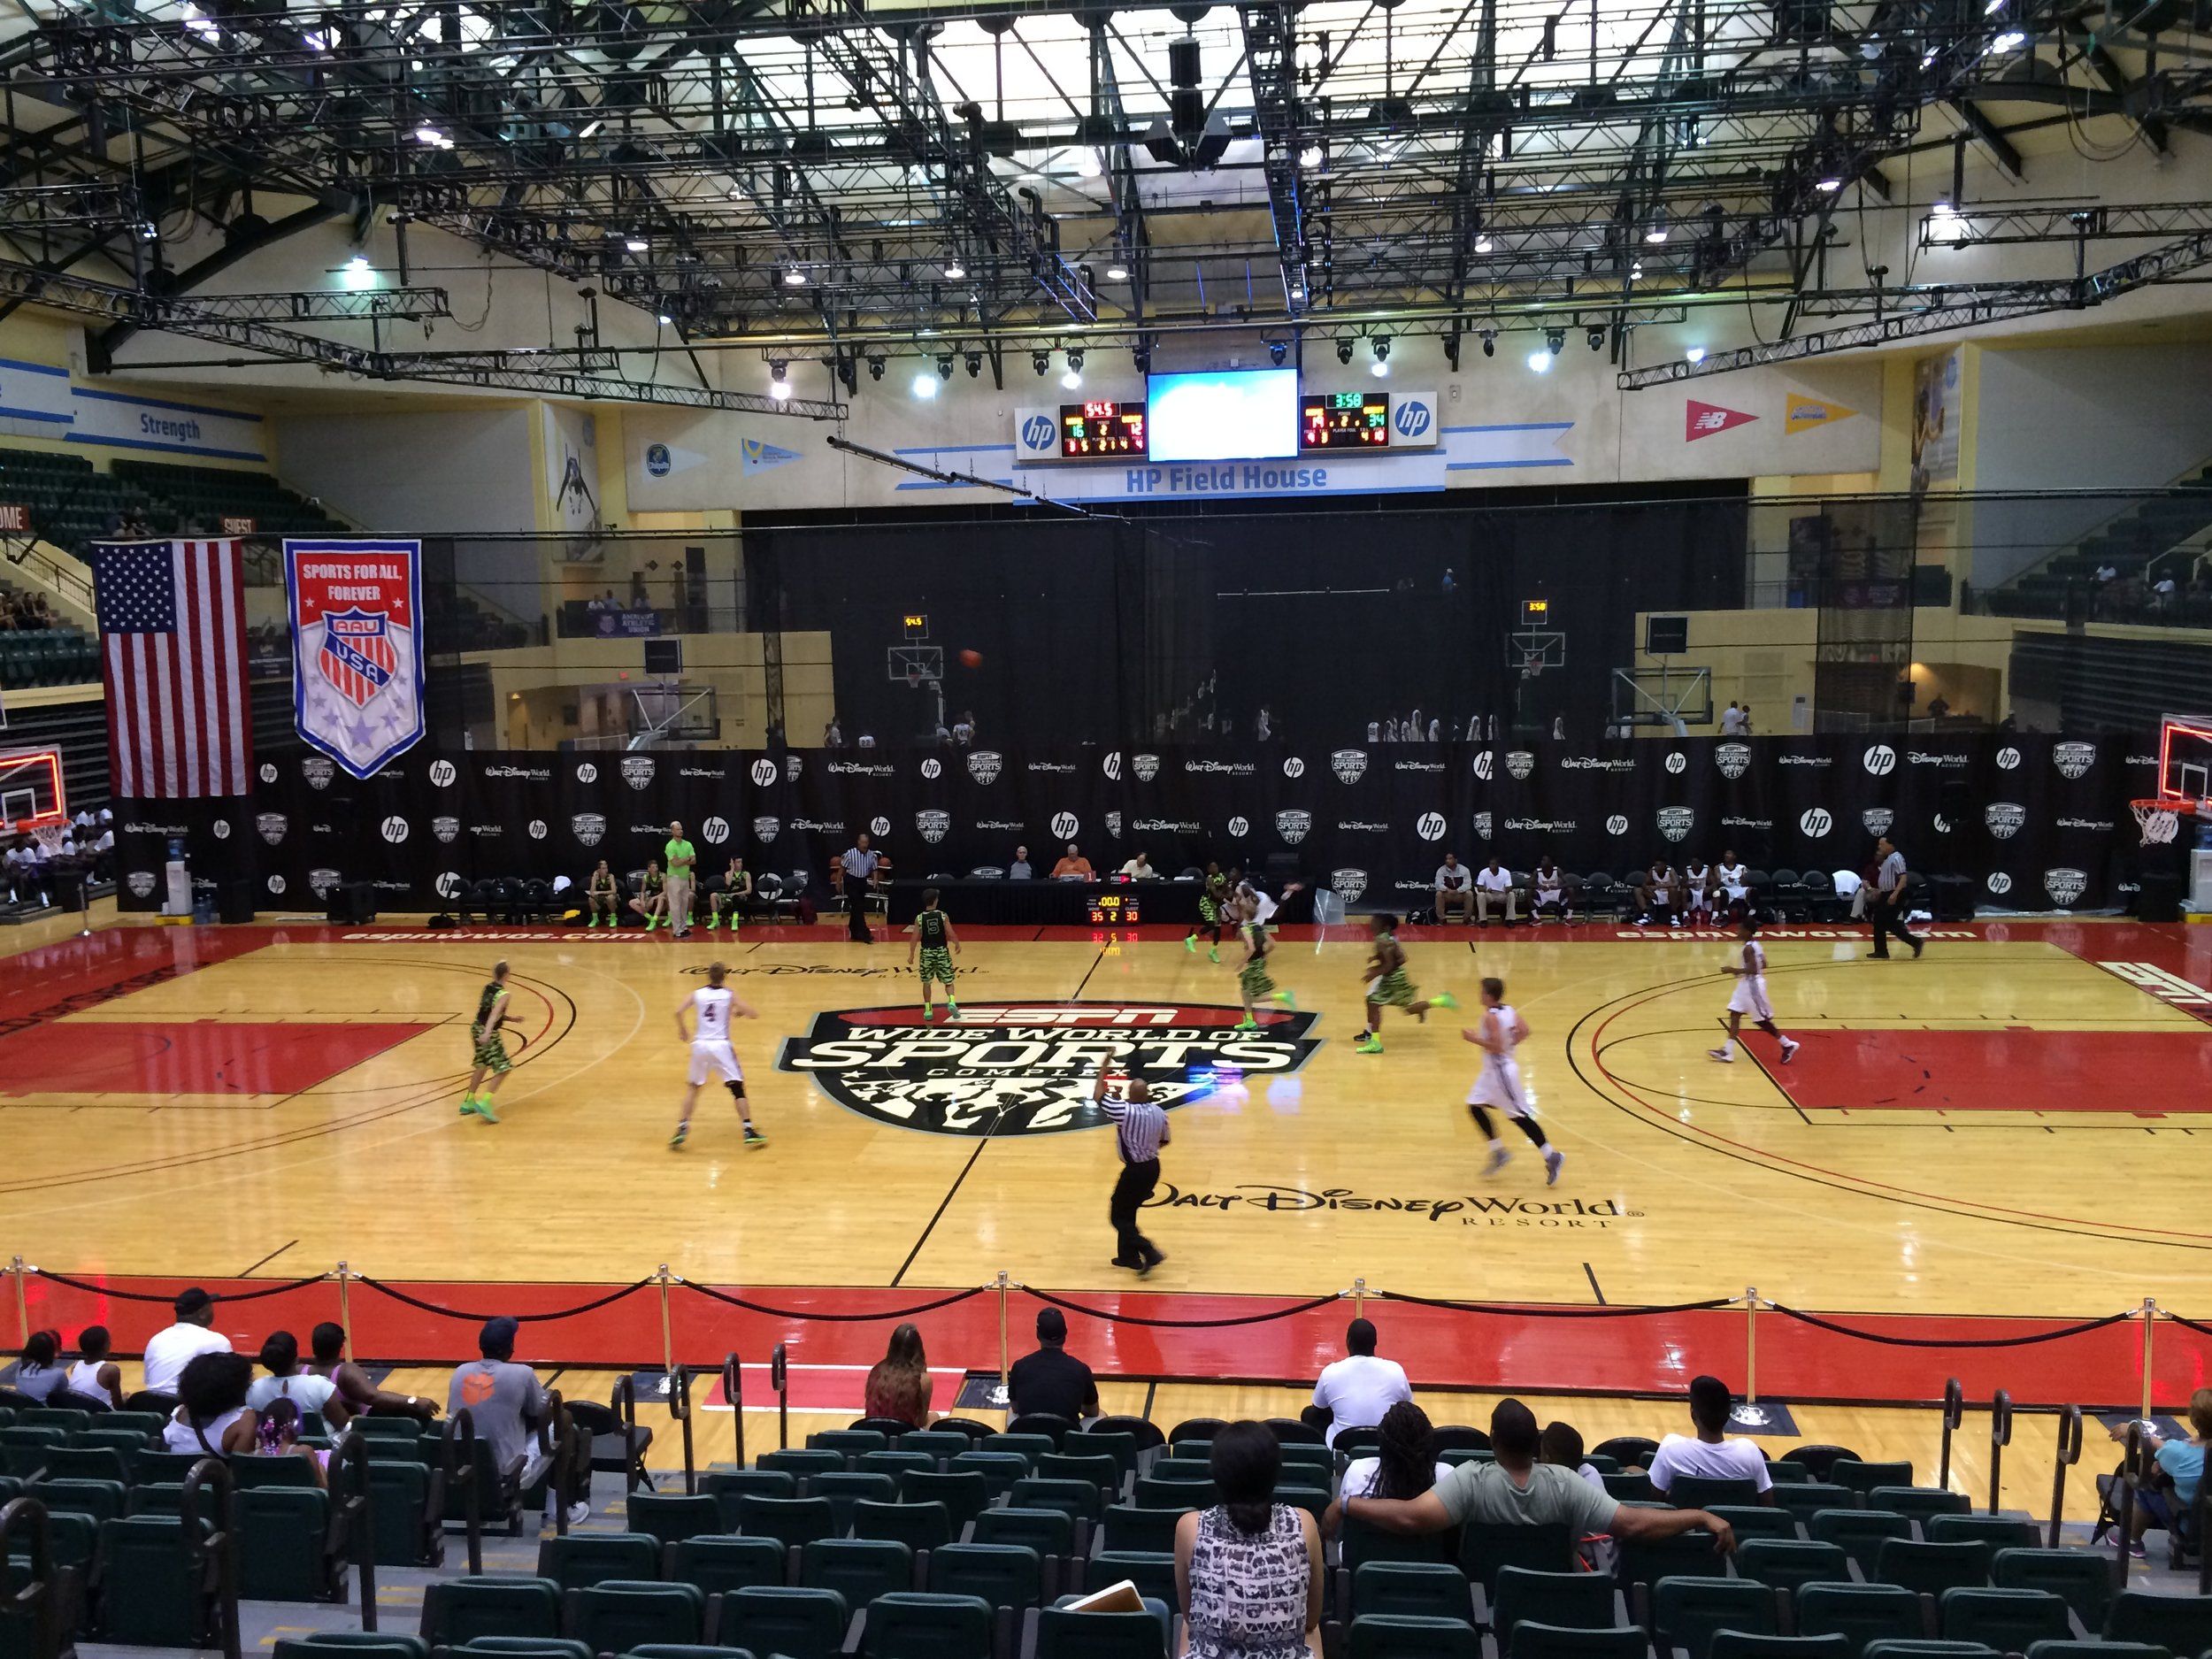 The same stage I played on to win a AAU National Championship in 2000 with my team, the NJB All-Stars